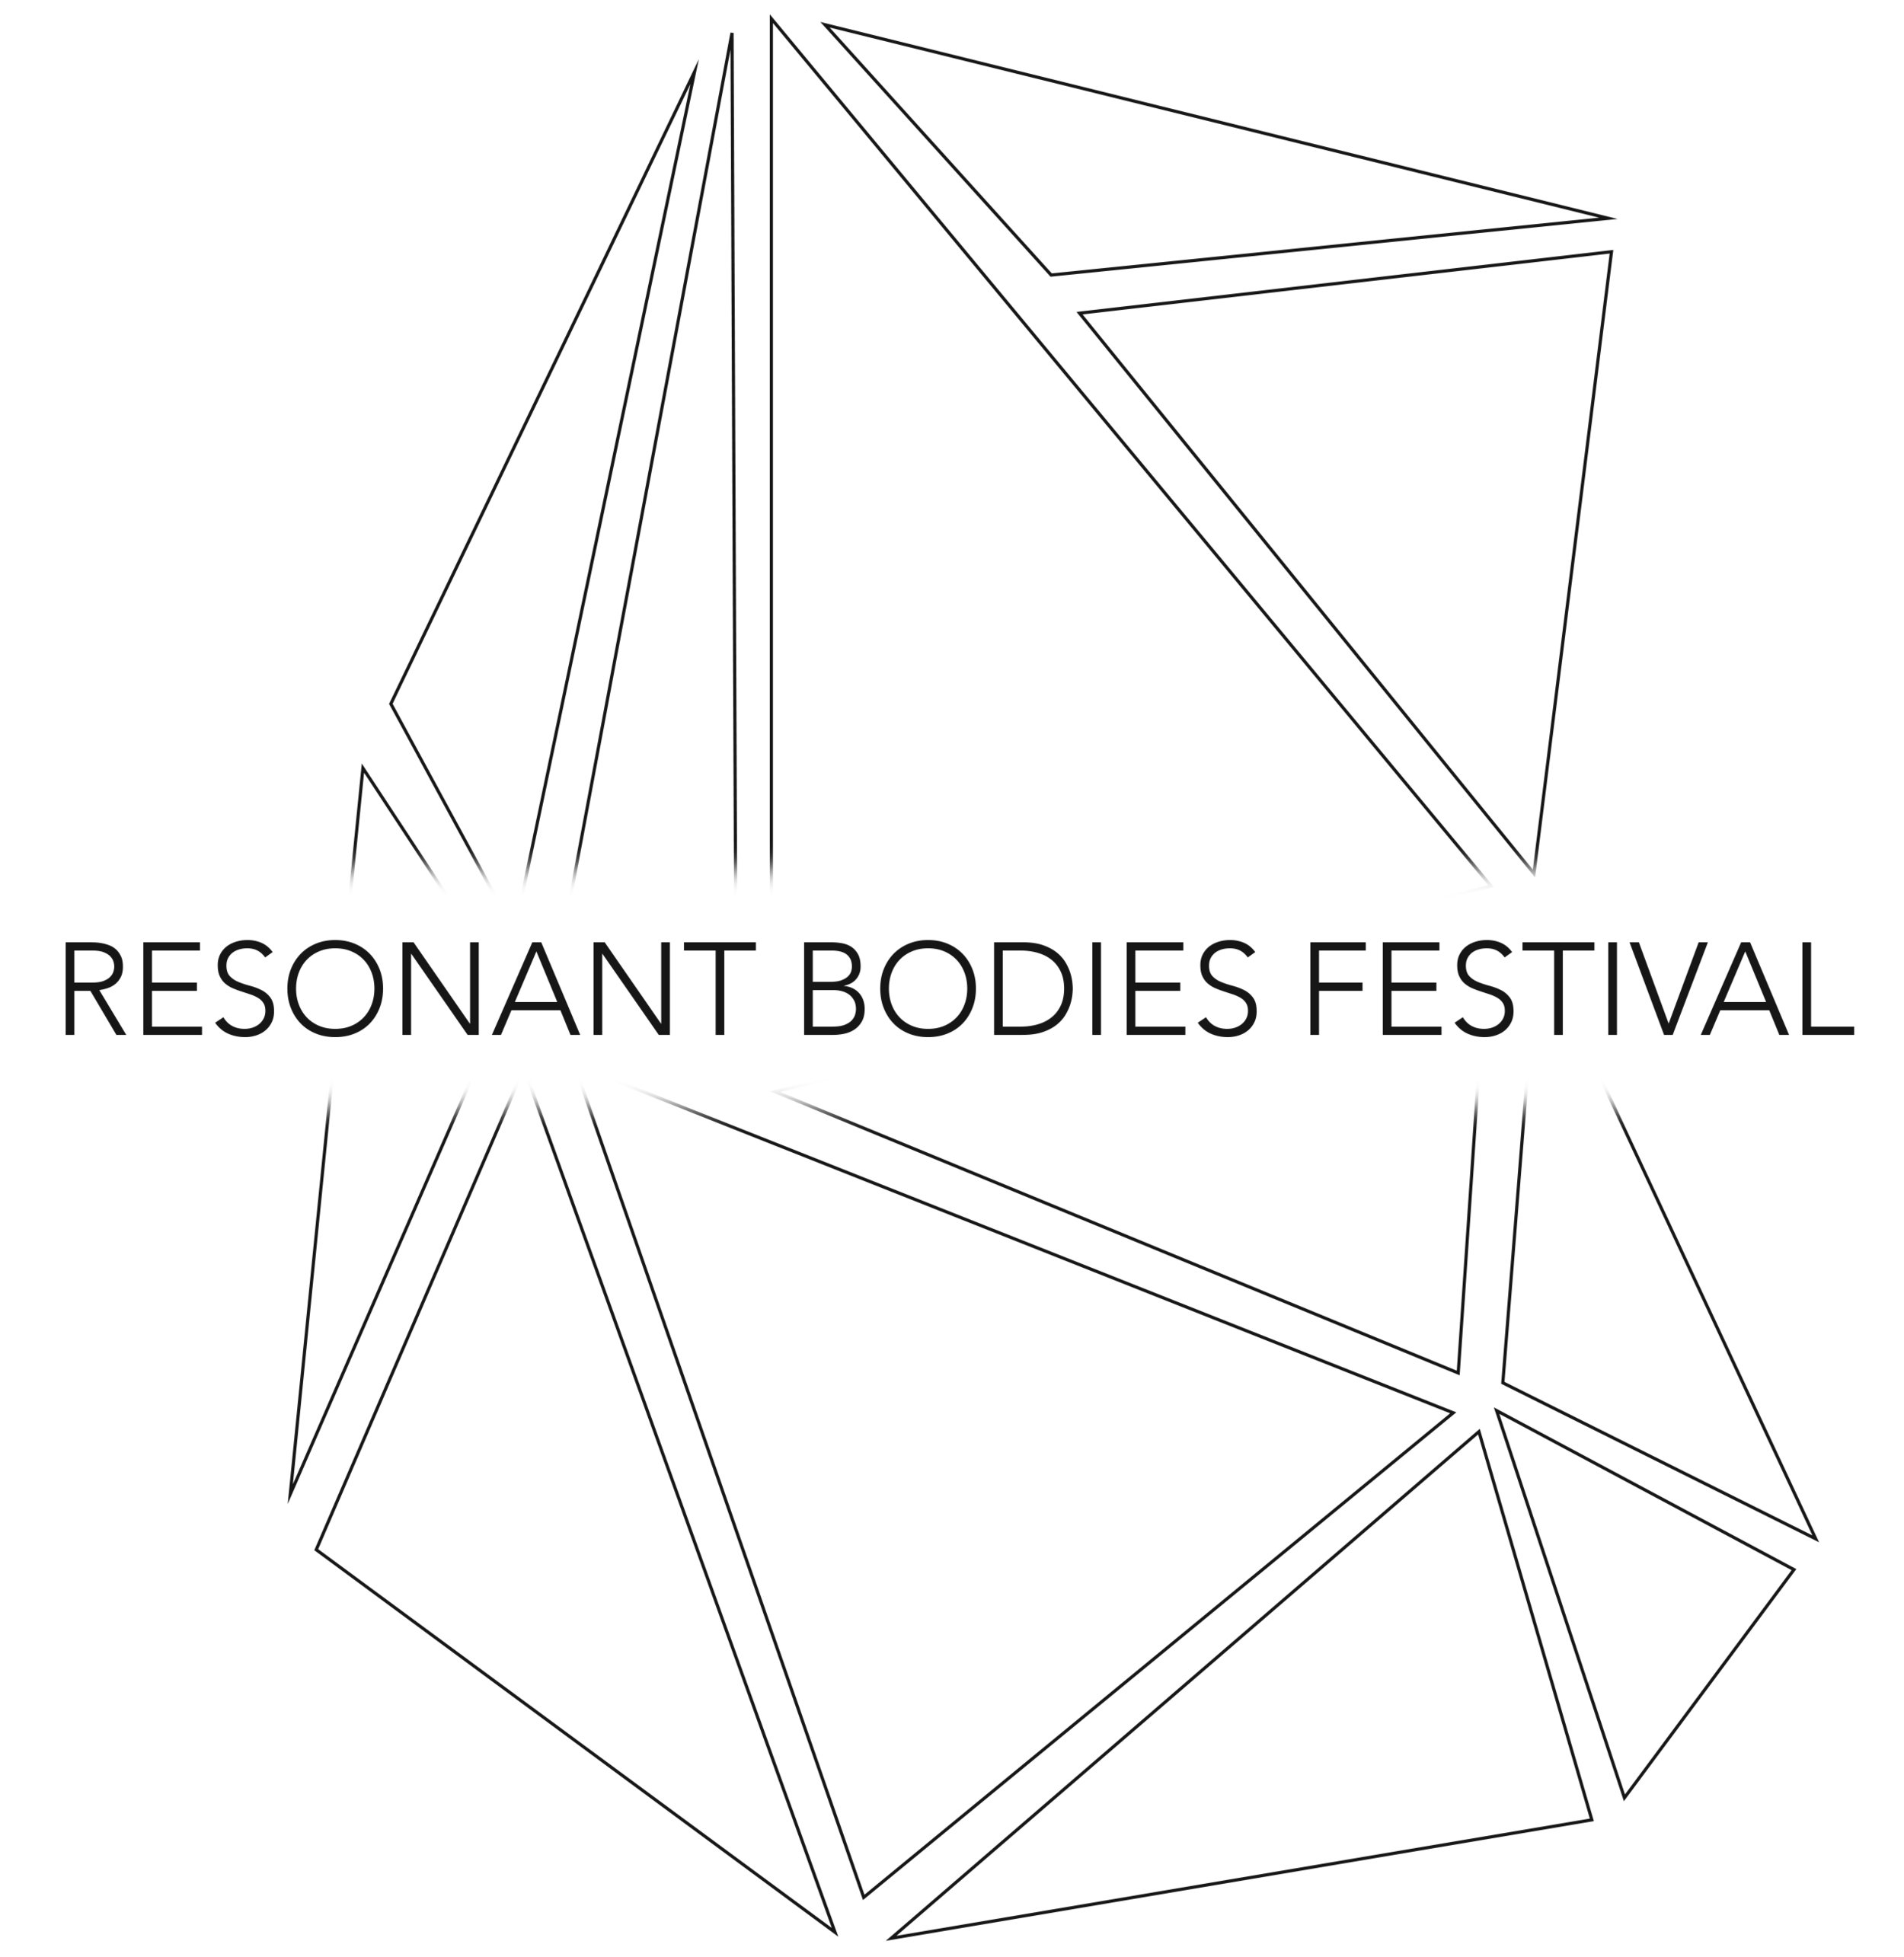 Resonant Bodies Festival